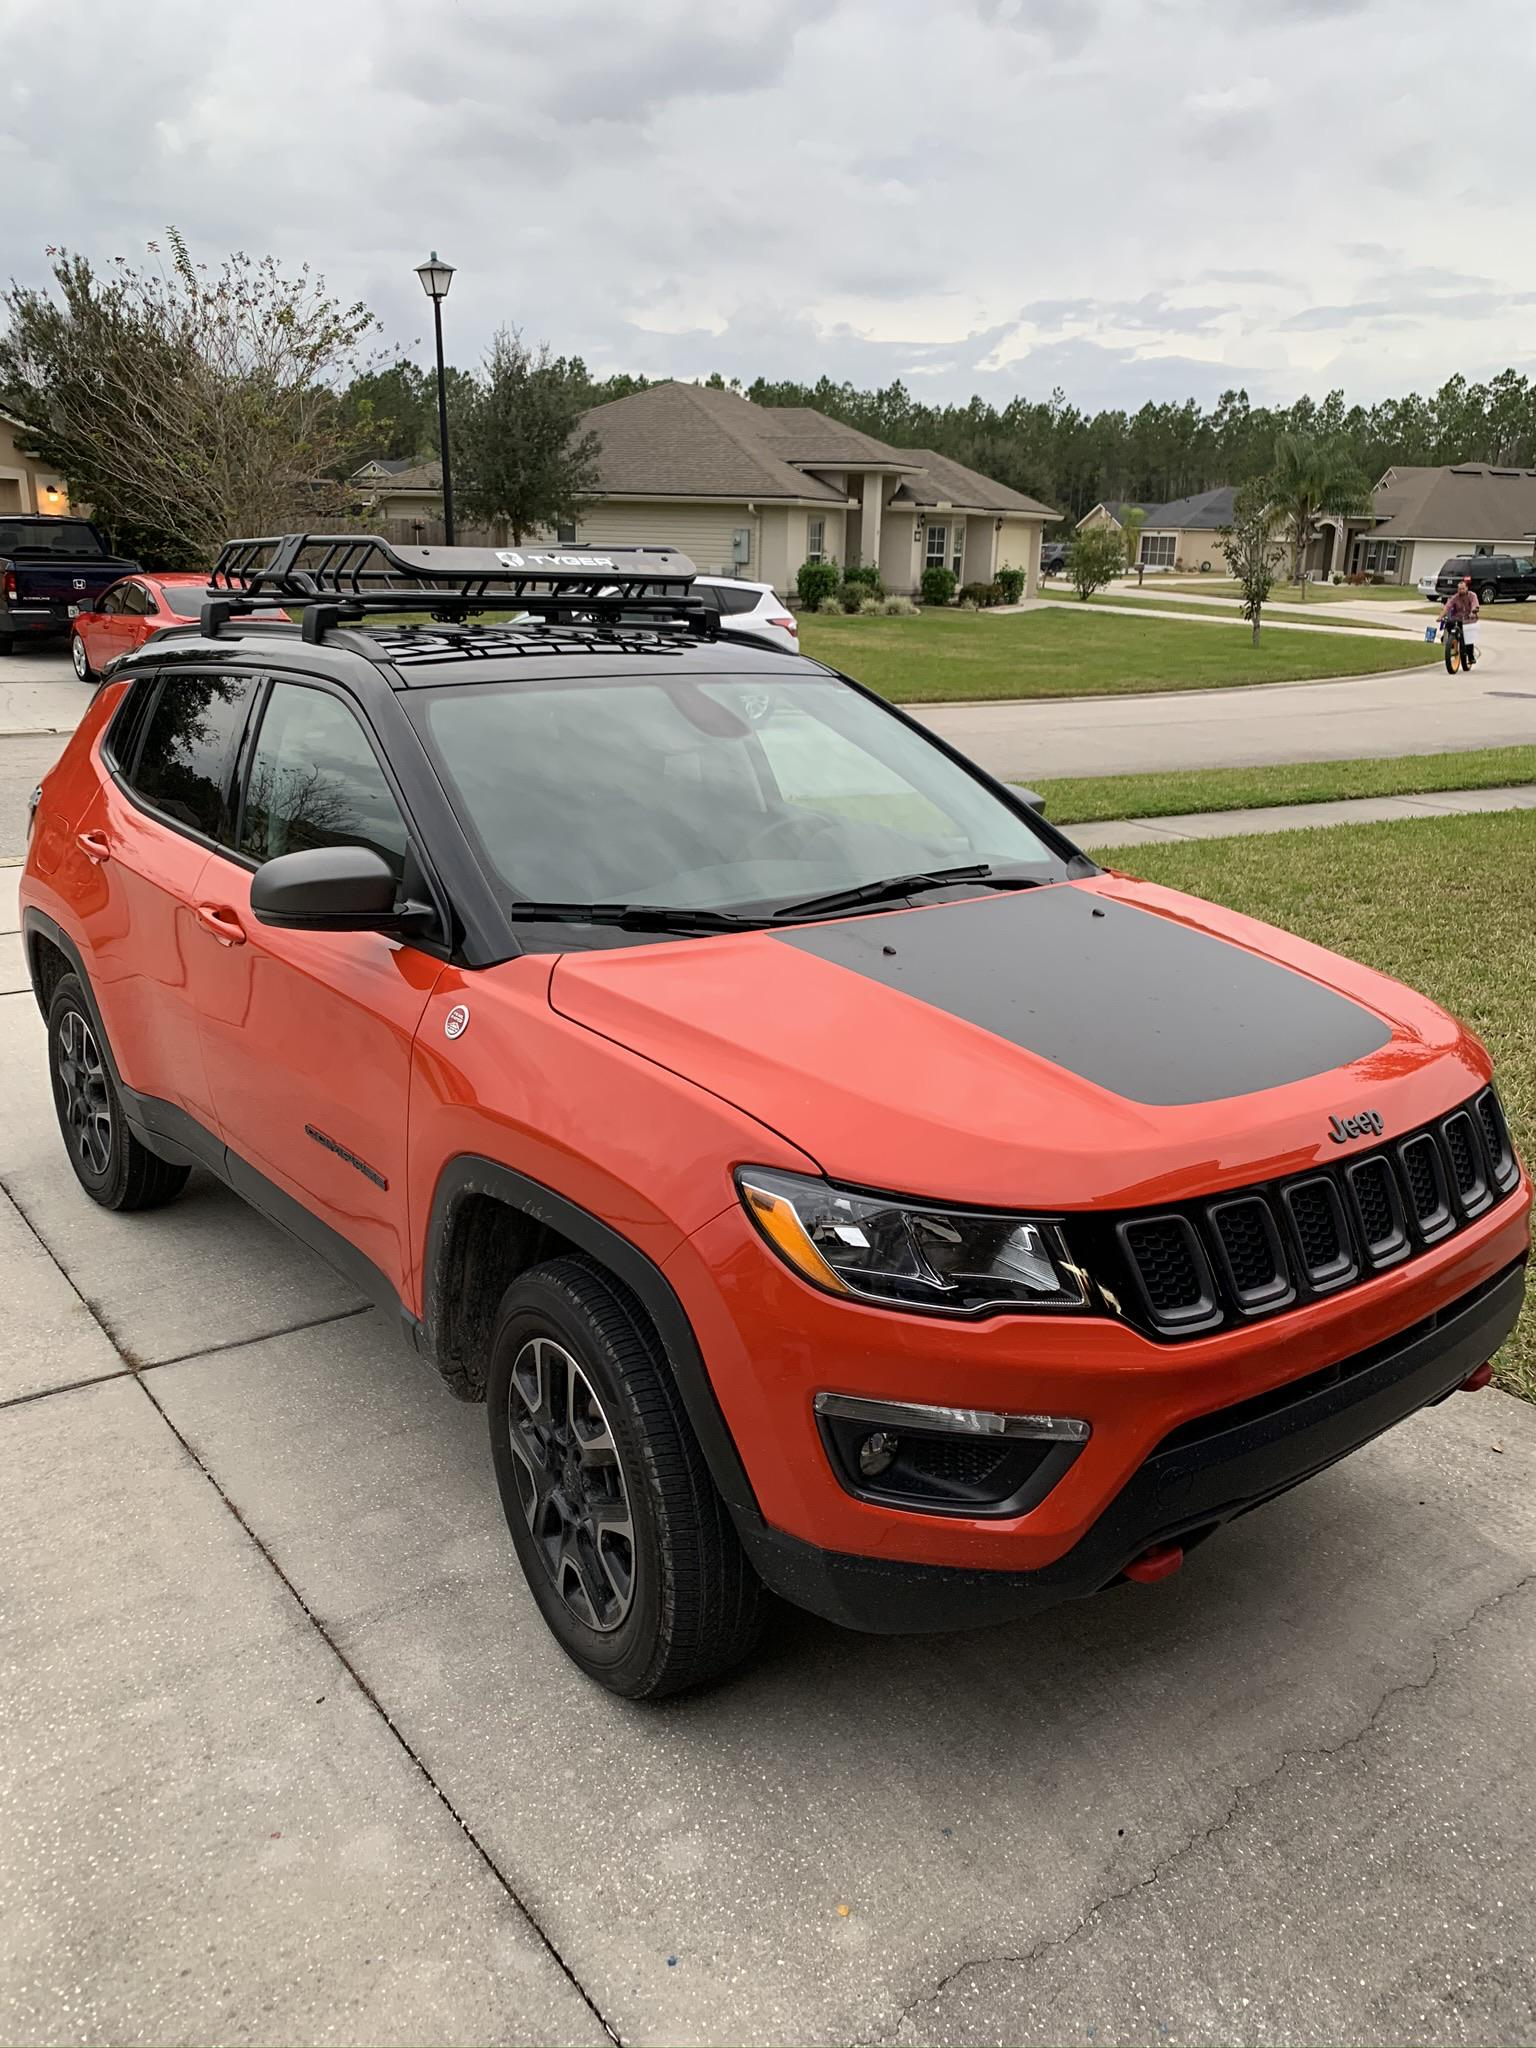 new roof rack day on my 2019 spitfire